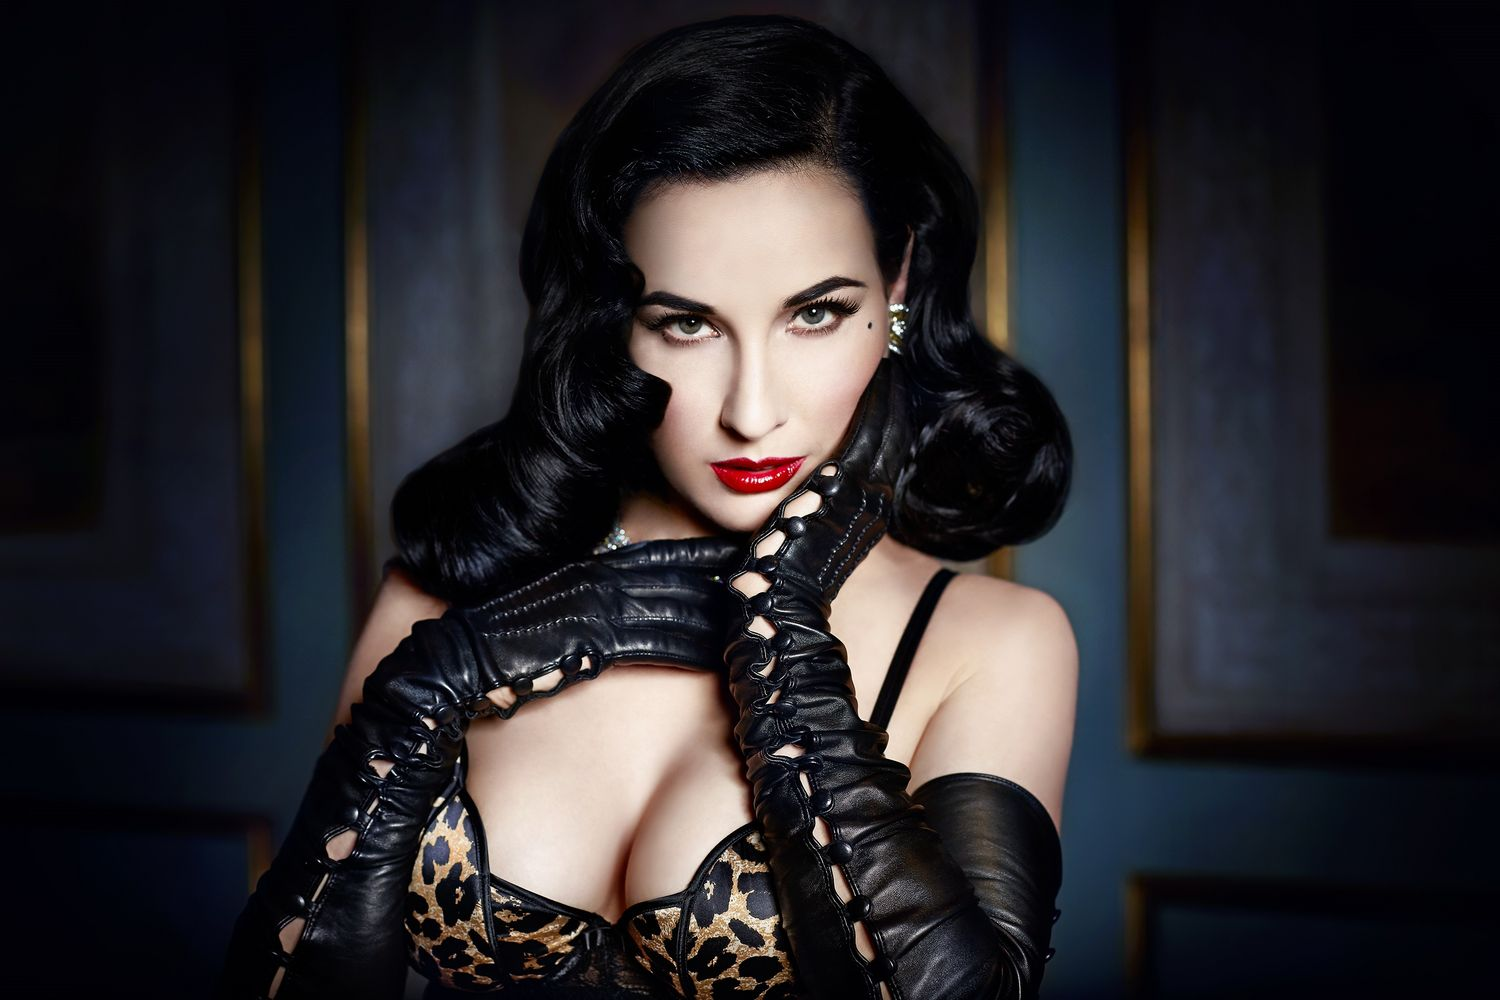 Dita Von Teese Backgrounds, Compatible - PC, Mobile, Gadgets| 1500x1000 px